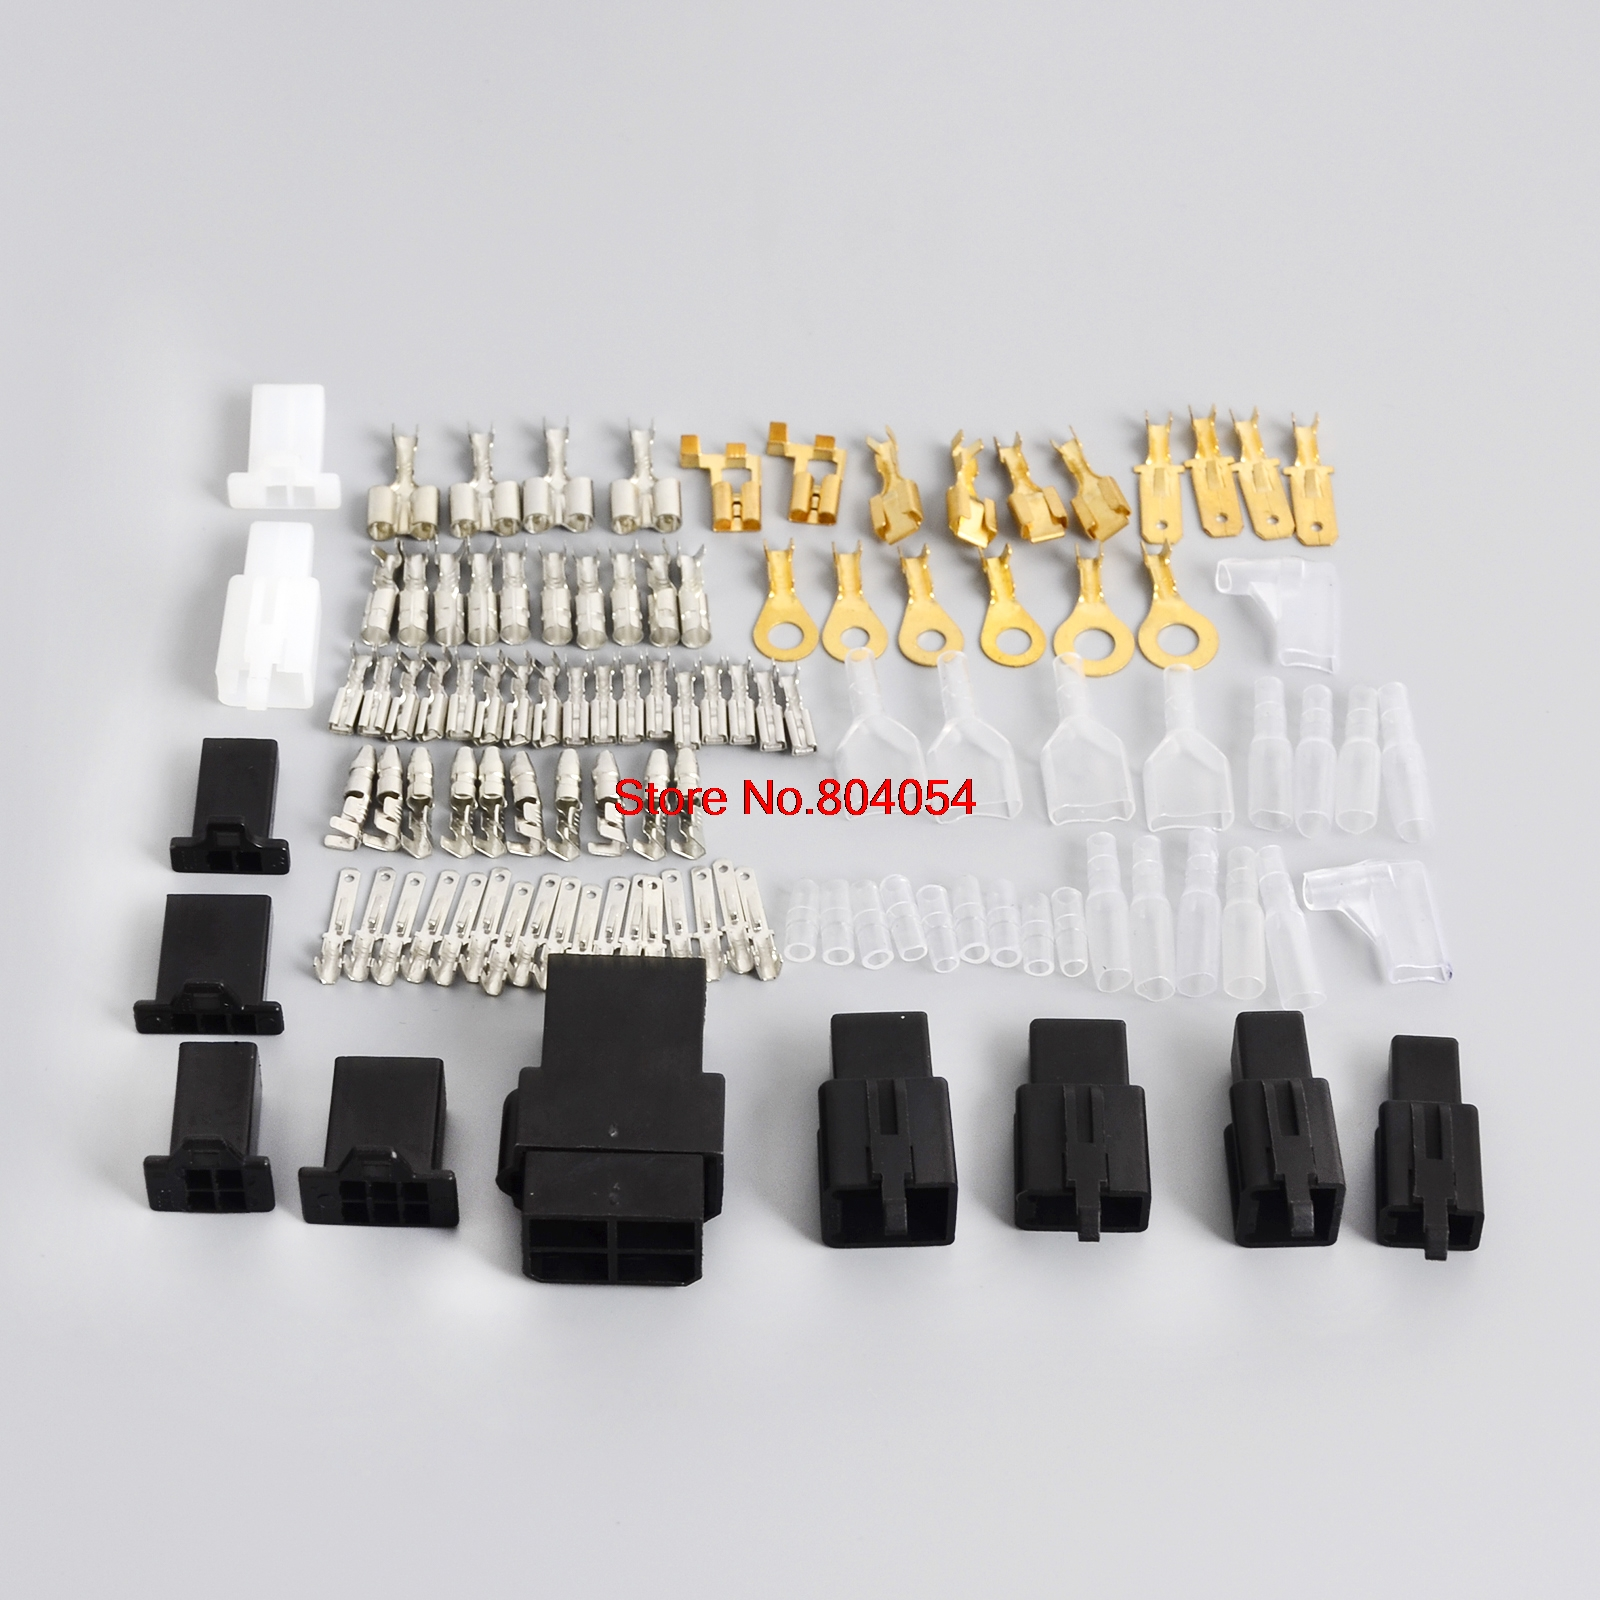 For Honda Yamaha Kawasaki Suzuki Ducati Motorcycle Electrical Wiring Harness Loom Repair Kit Plugs Bullets Connectors In Fuses From Automobiles